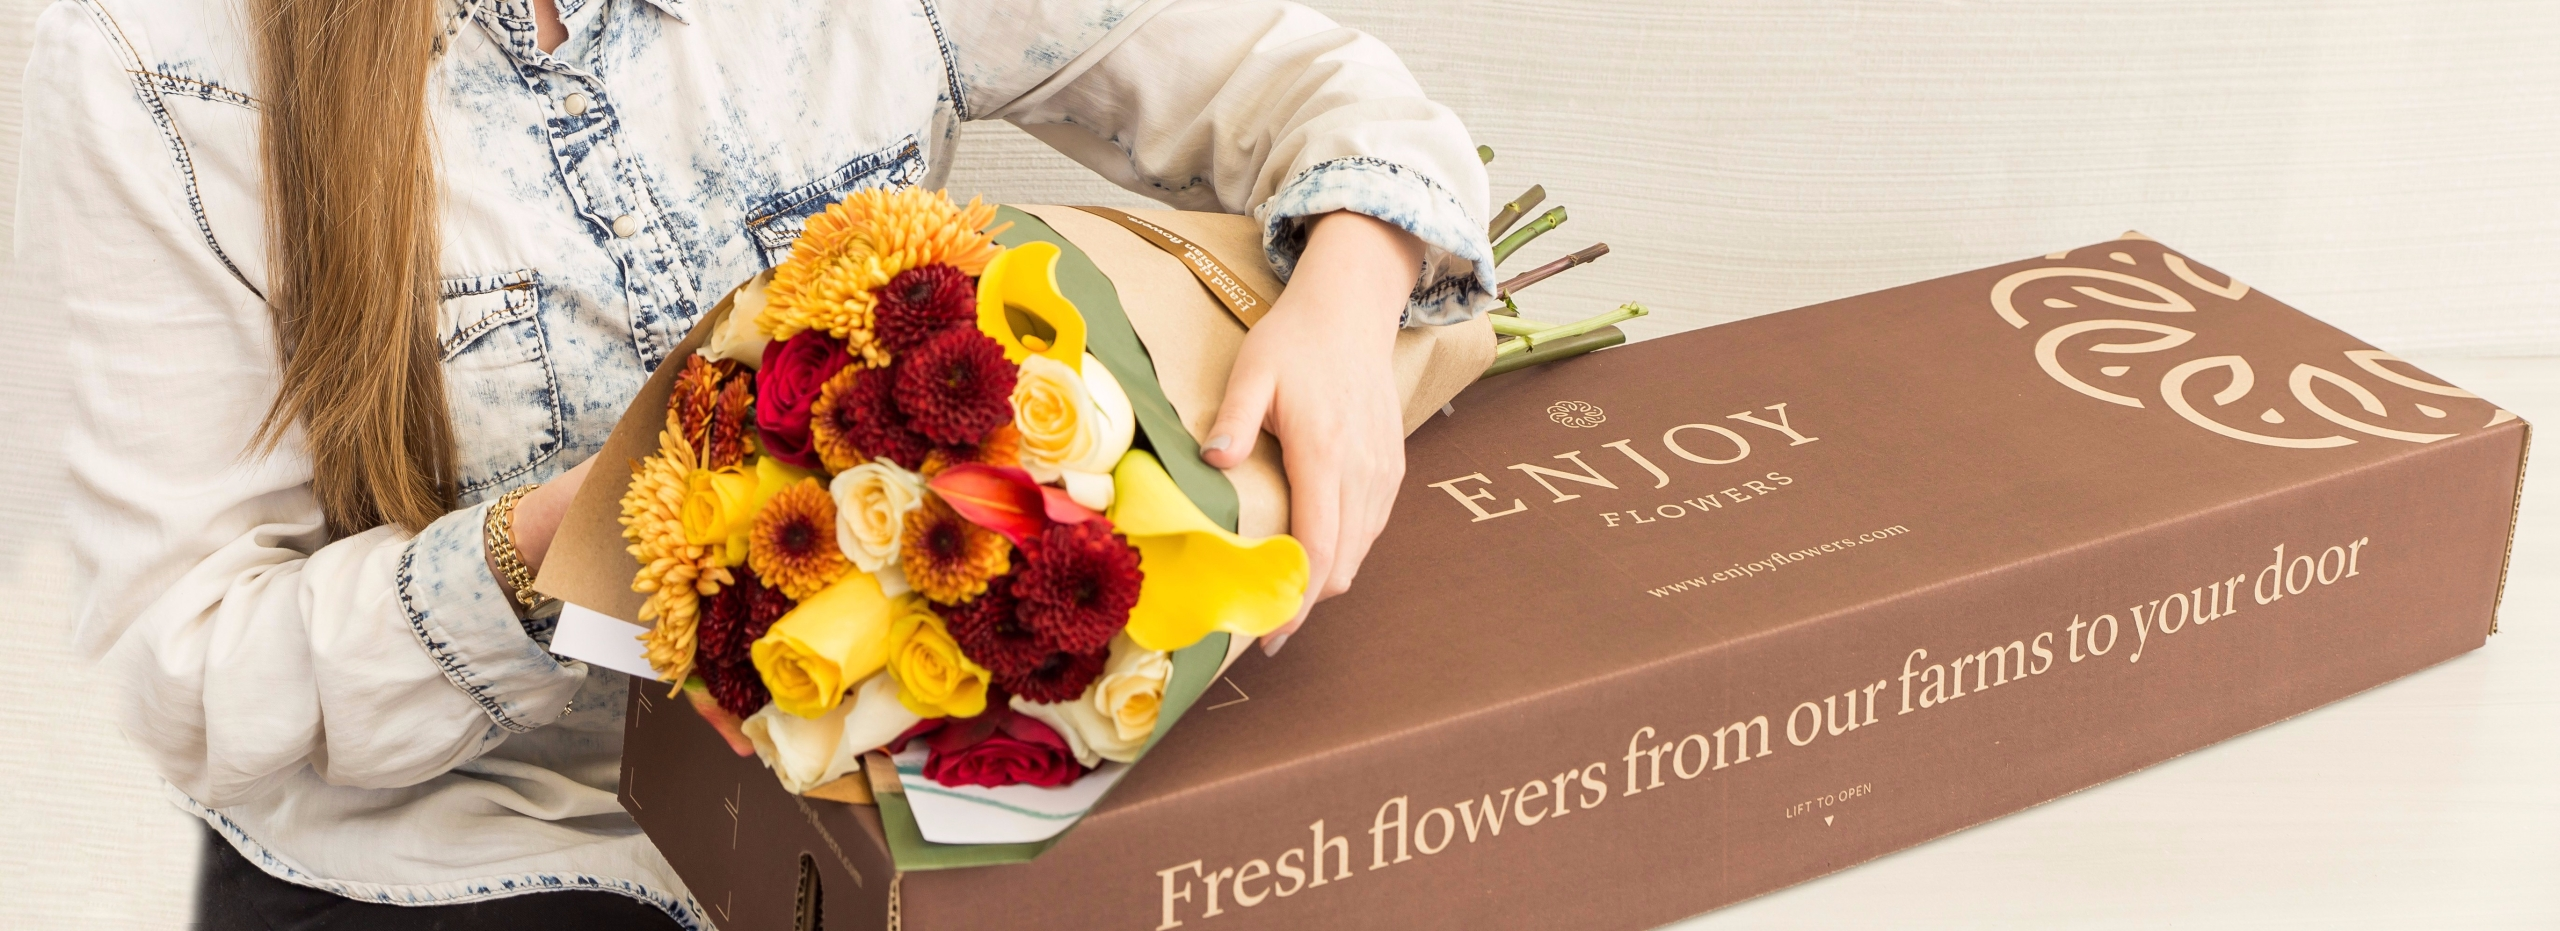 Customer with her flower subscription box